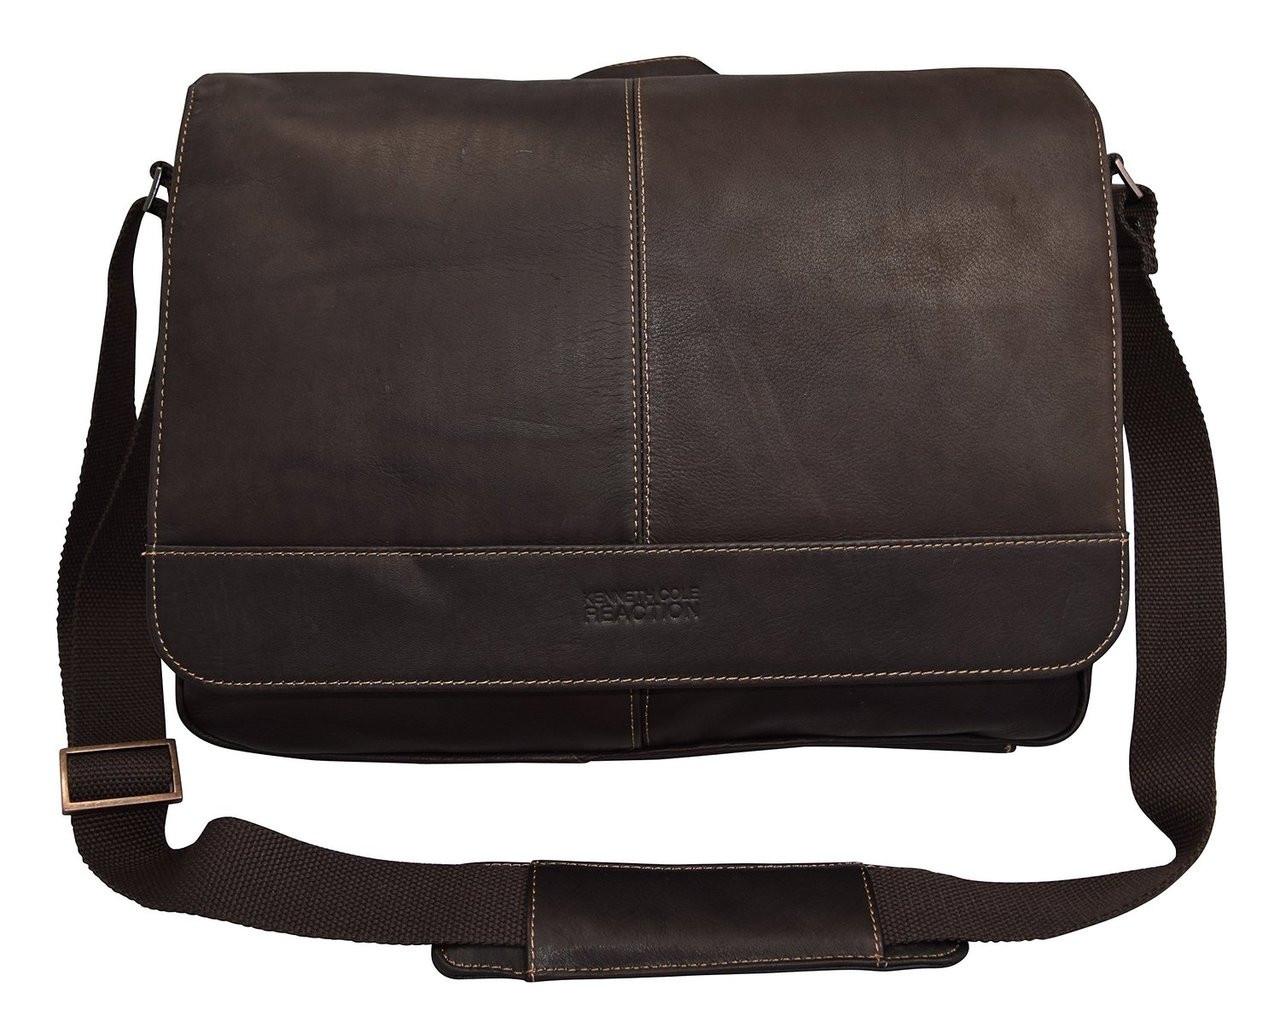 Kenneth Cole Reaction Show Business Briefcase 524431